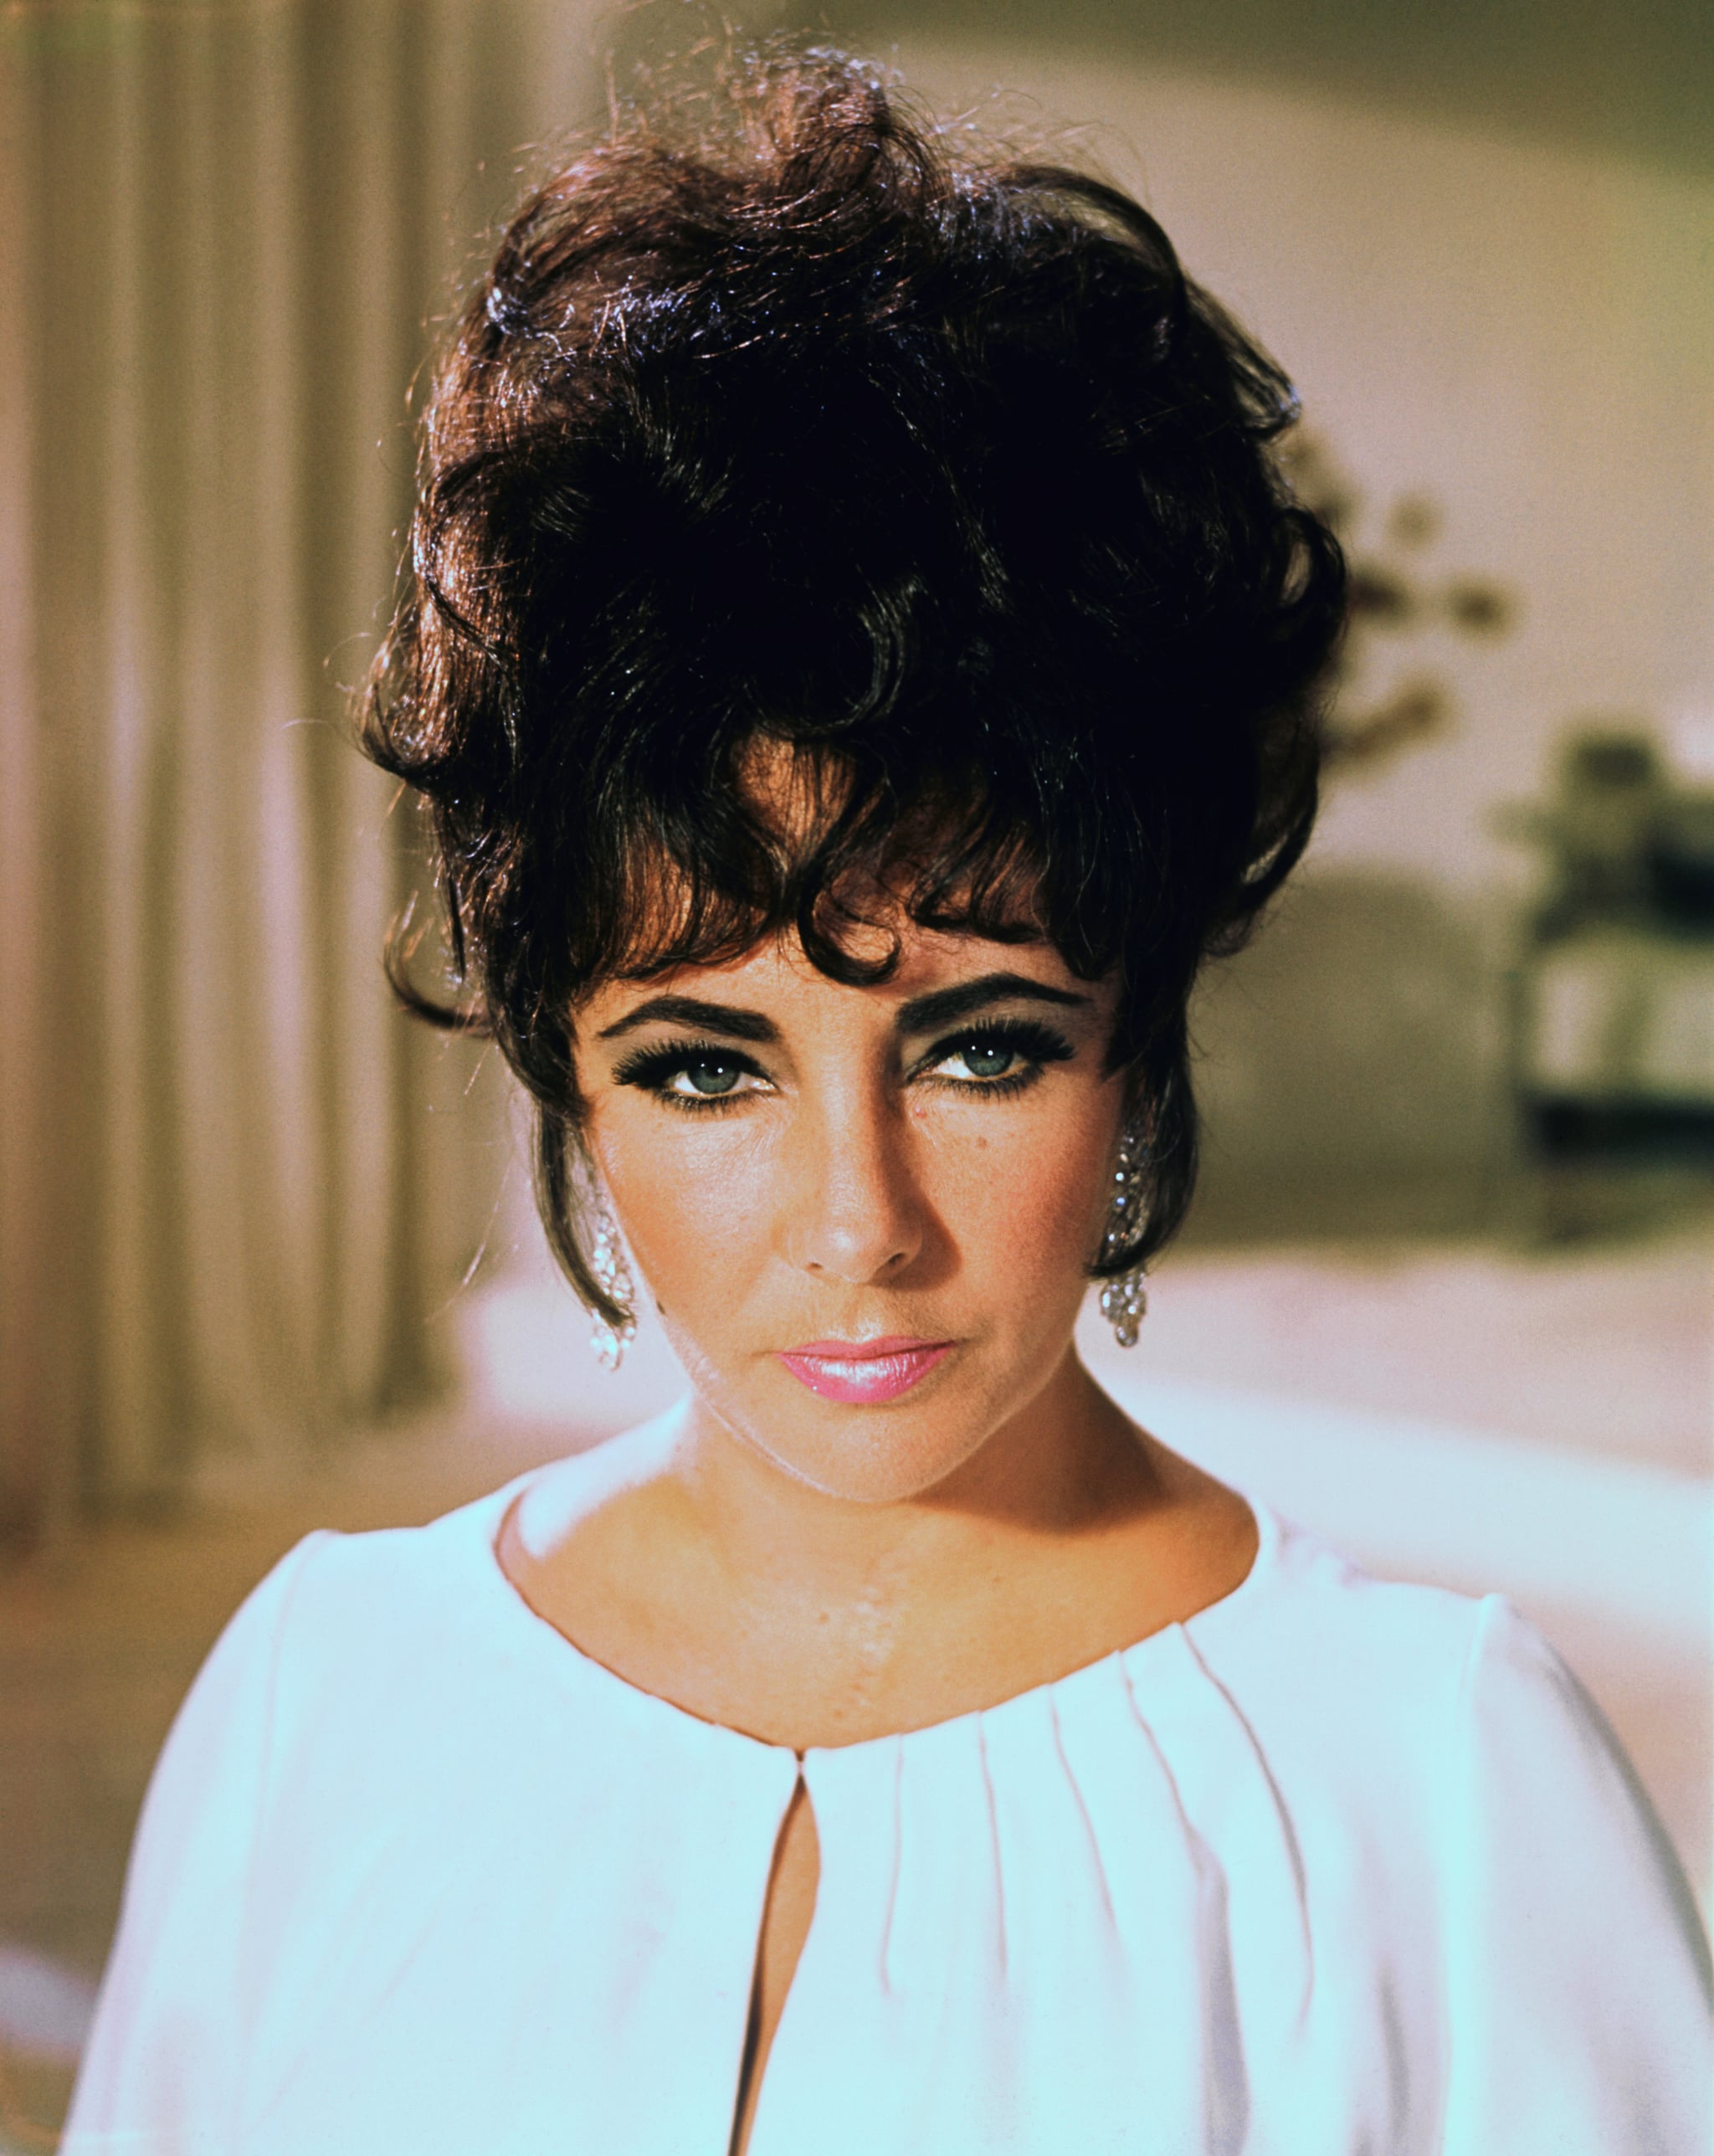 Publicity handout of actress Elizabeth Taylor, shown from the shoulders up, wearing a white dress, with her hair pinned up loosely to form a bouffant. Undated photograph.